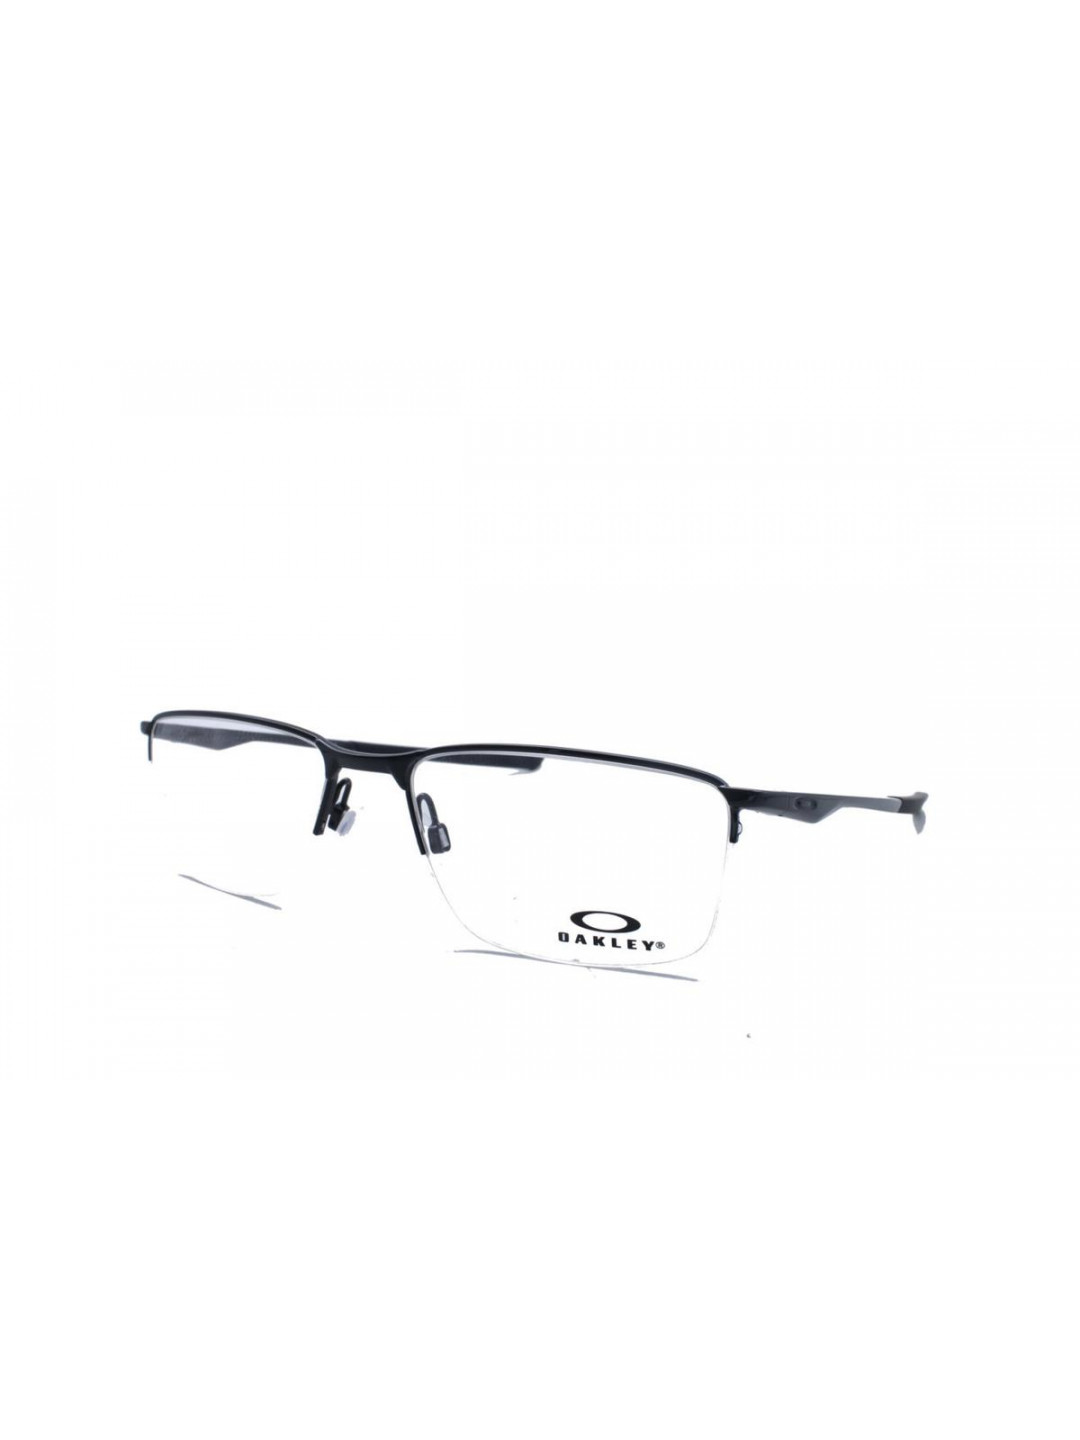 Oakley OA 3218 0156 Rectangle Black Half Frame With Stainless Steel